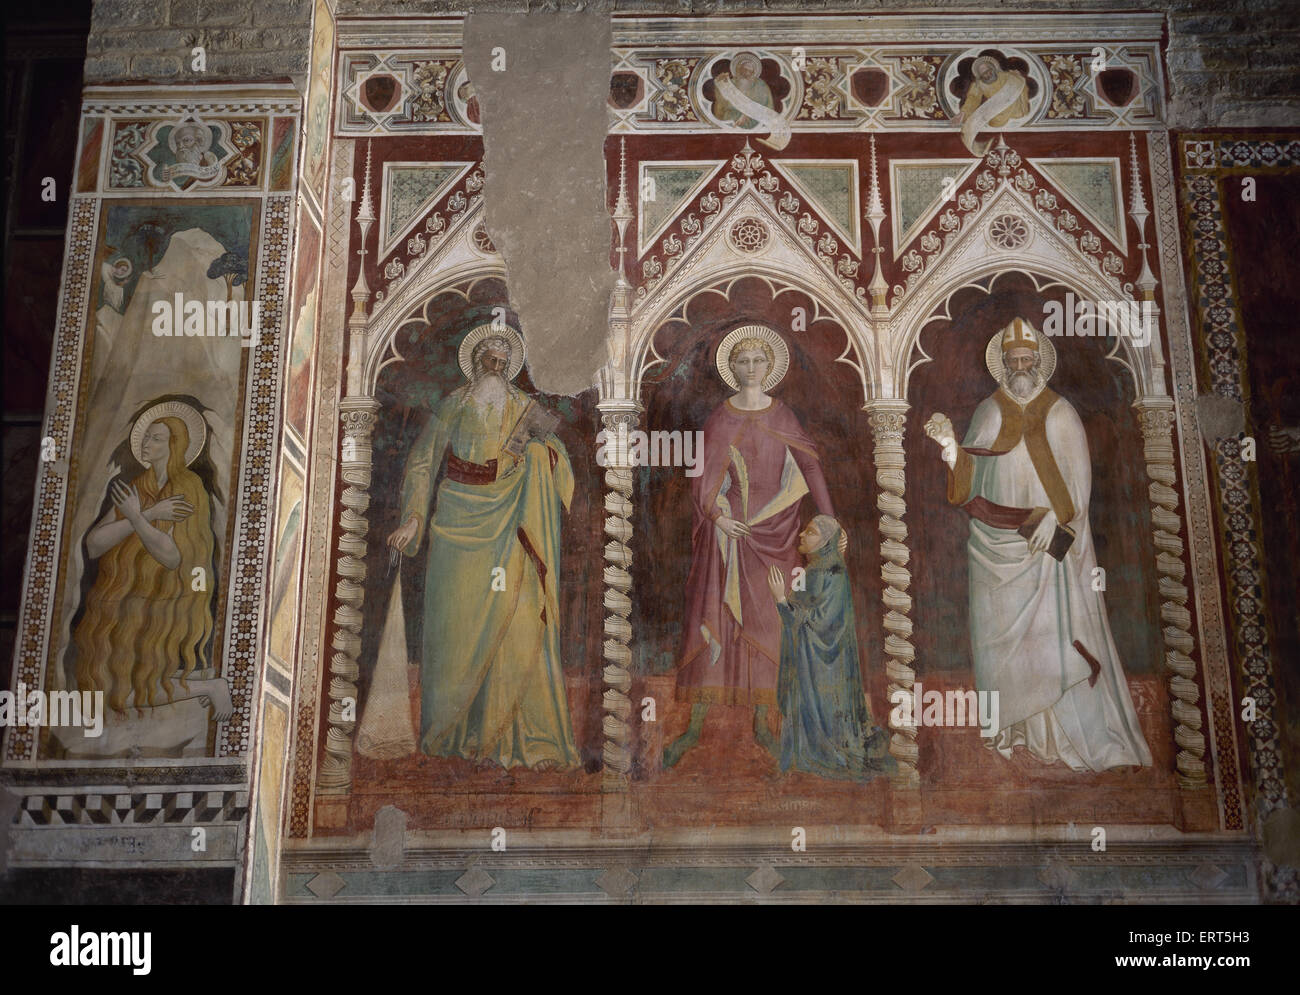 Italy. Florence. Theory of Saints by Spinello Aretino (ca. 1350-1410). Basilica of San Miniato al Monte. - Stock Image